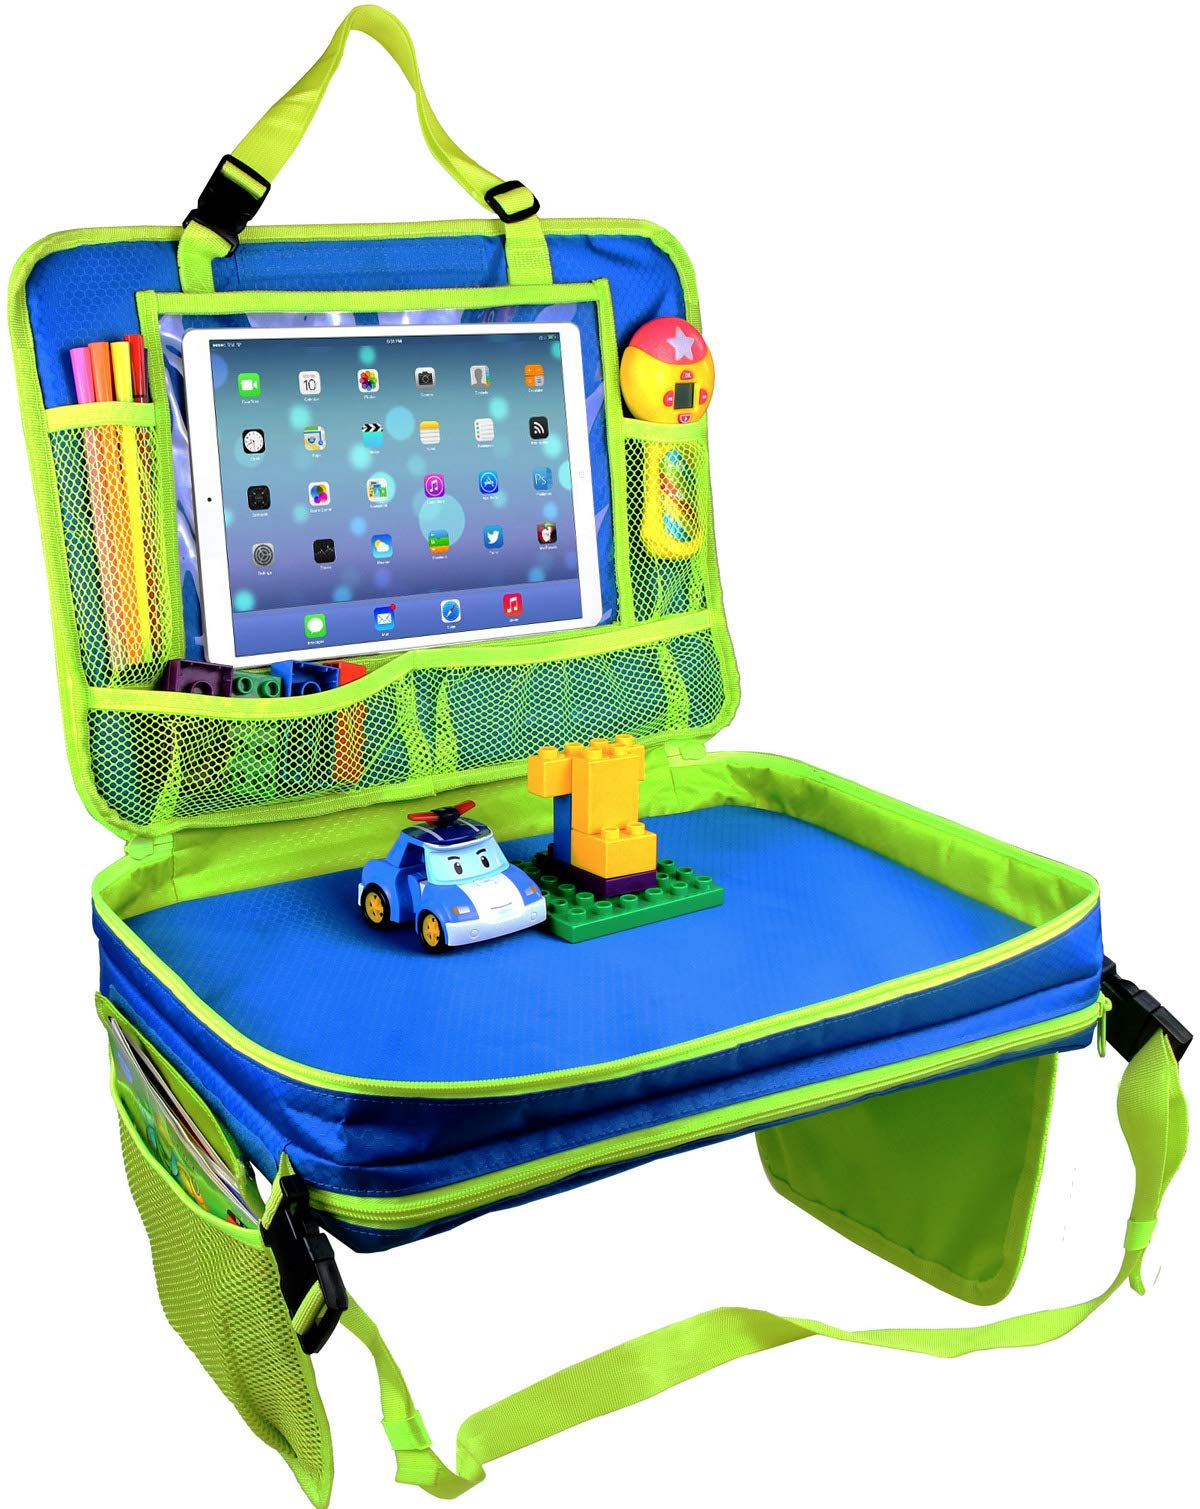 """Kids Travel Tray-4 in 1 Car Seat Travel Play Tray,Backseat Storage Organizer,Carry Bag and iPad & Tablet Holder All in One-Toddlers Lap Tray(17""""x13"""")-Great for Activity, Snacks and Play(Blue)"""